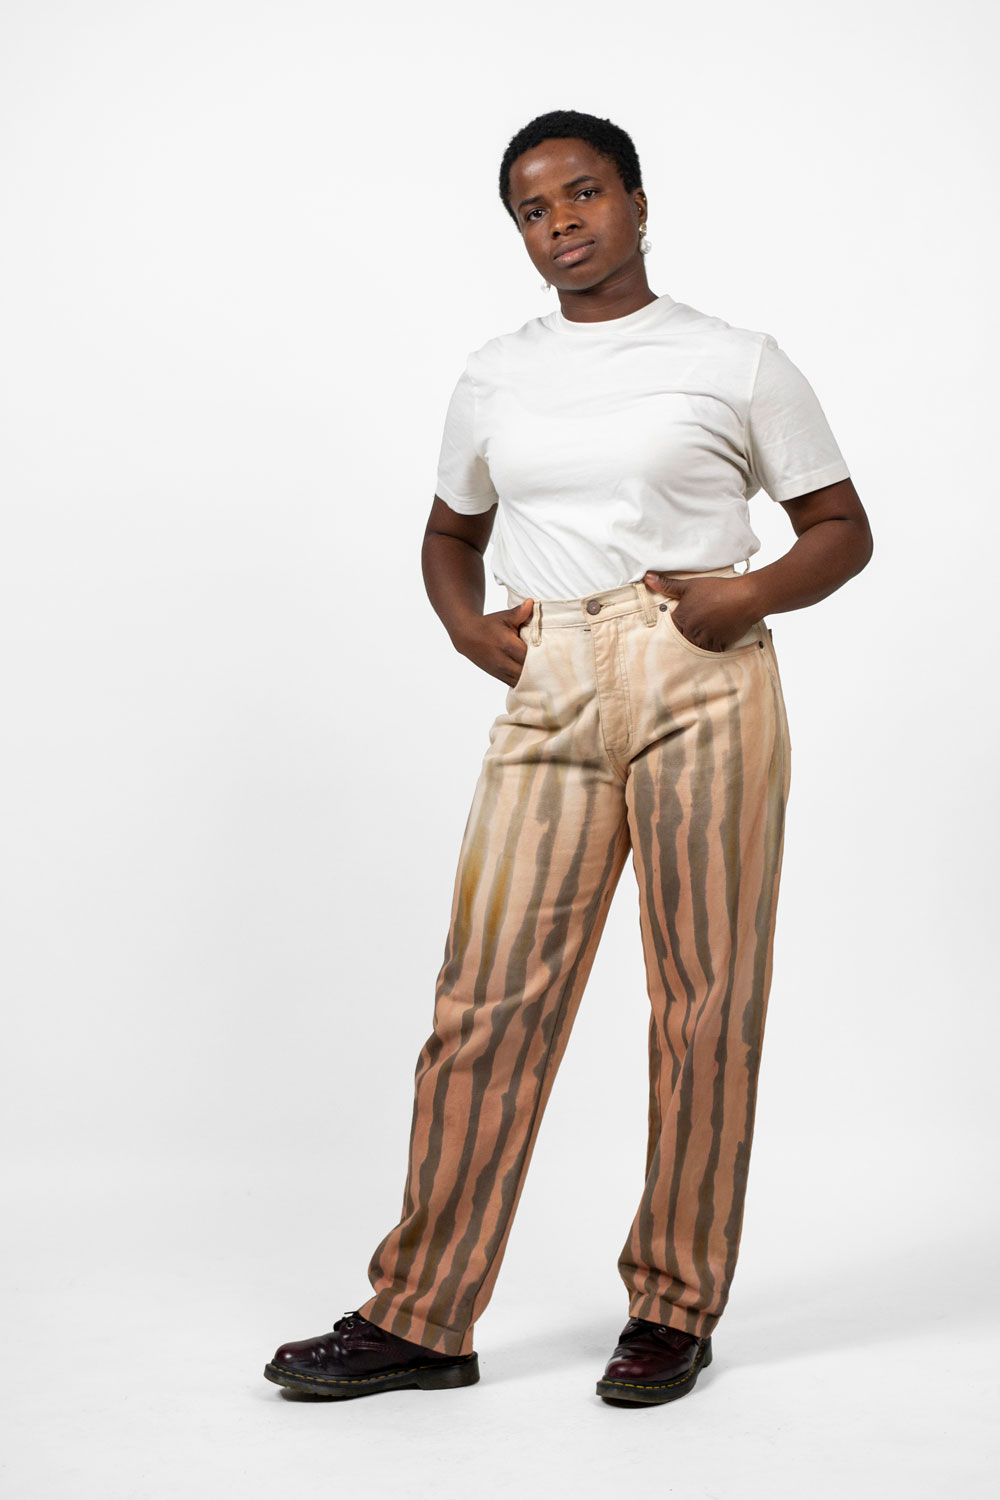 woman proudly wearing repainted trousers